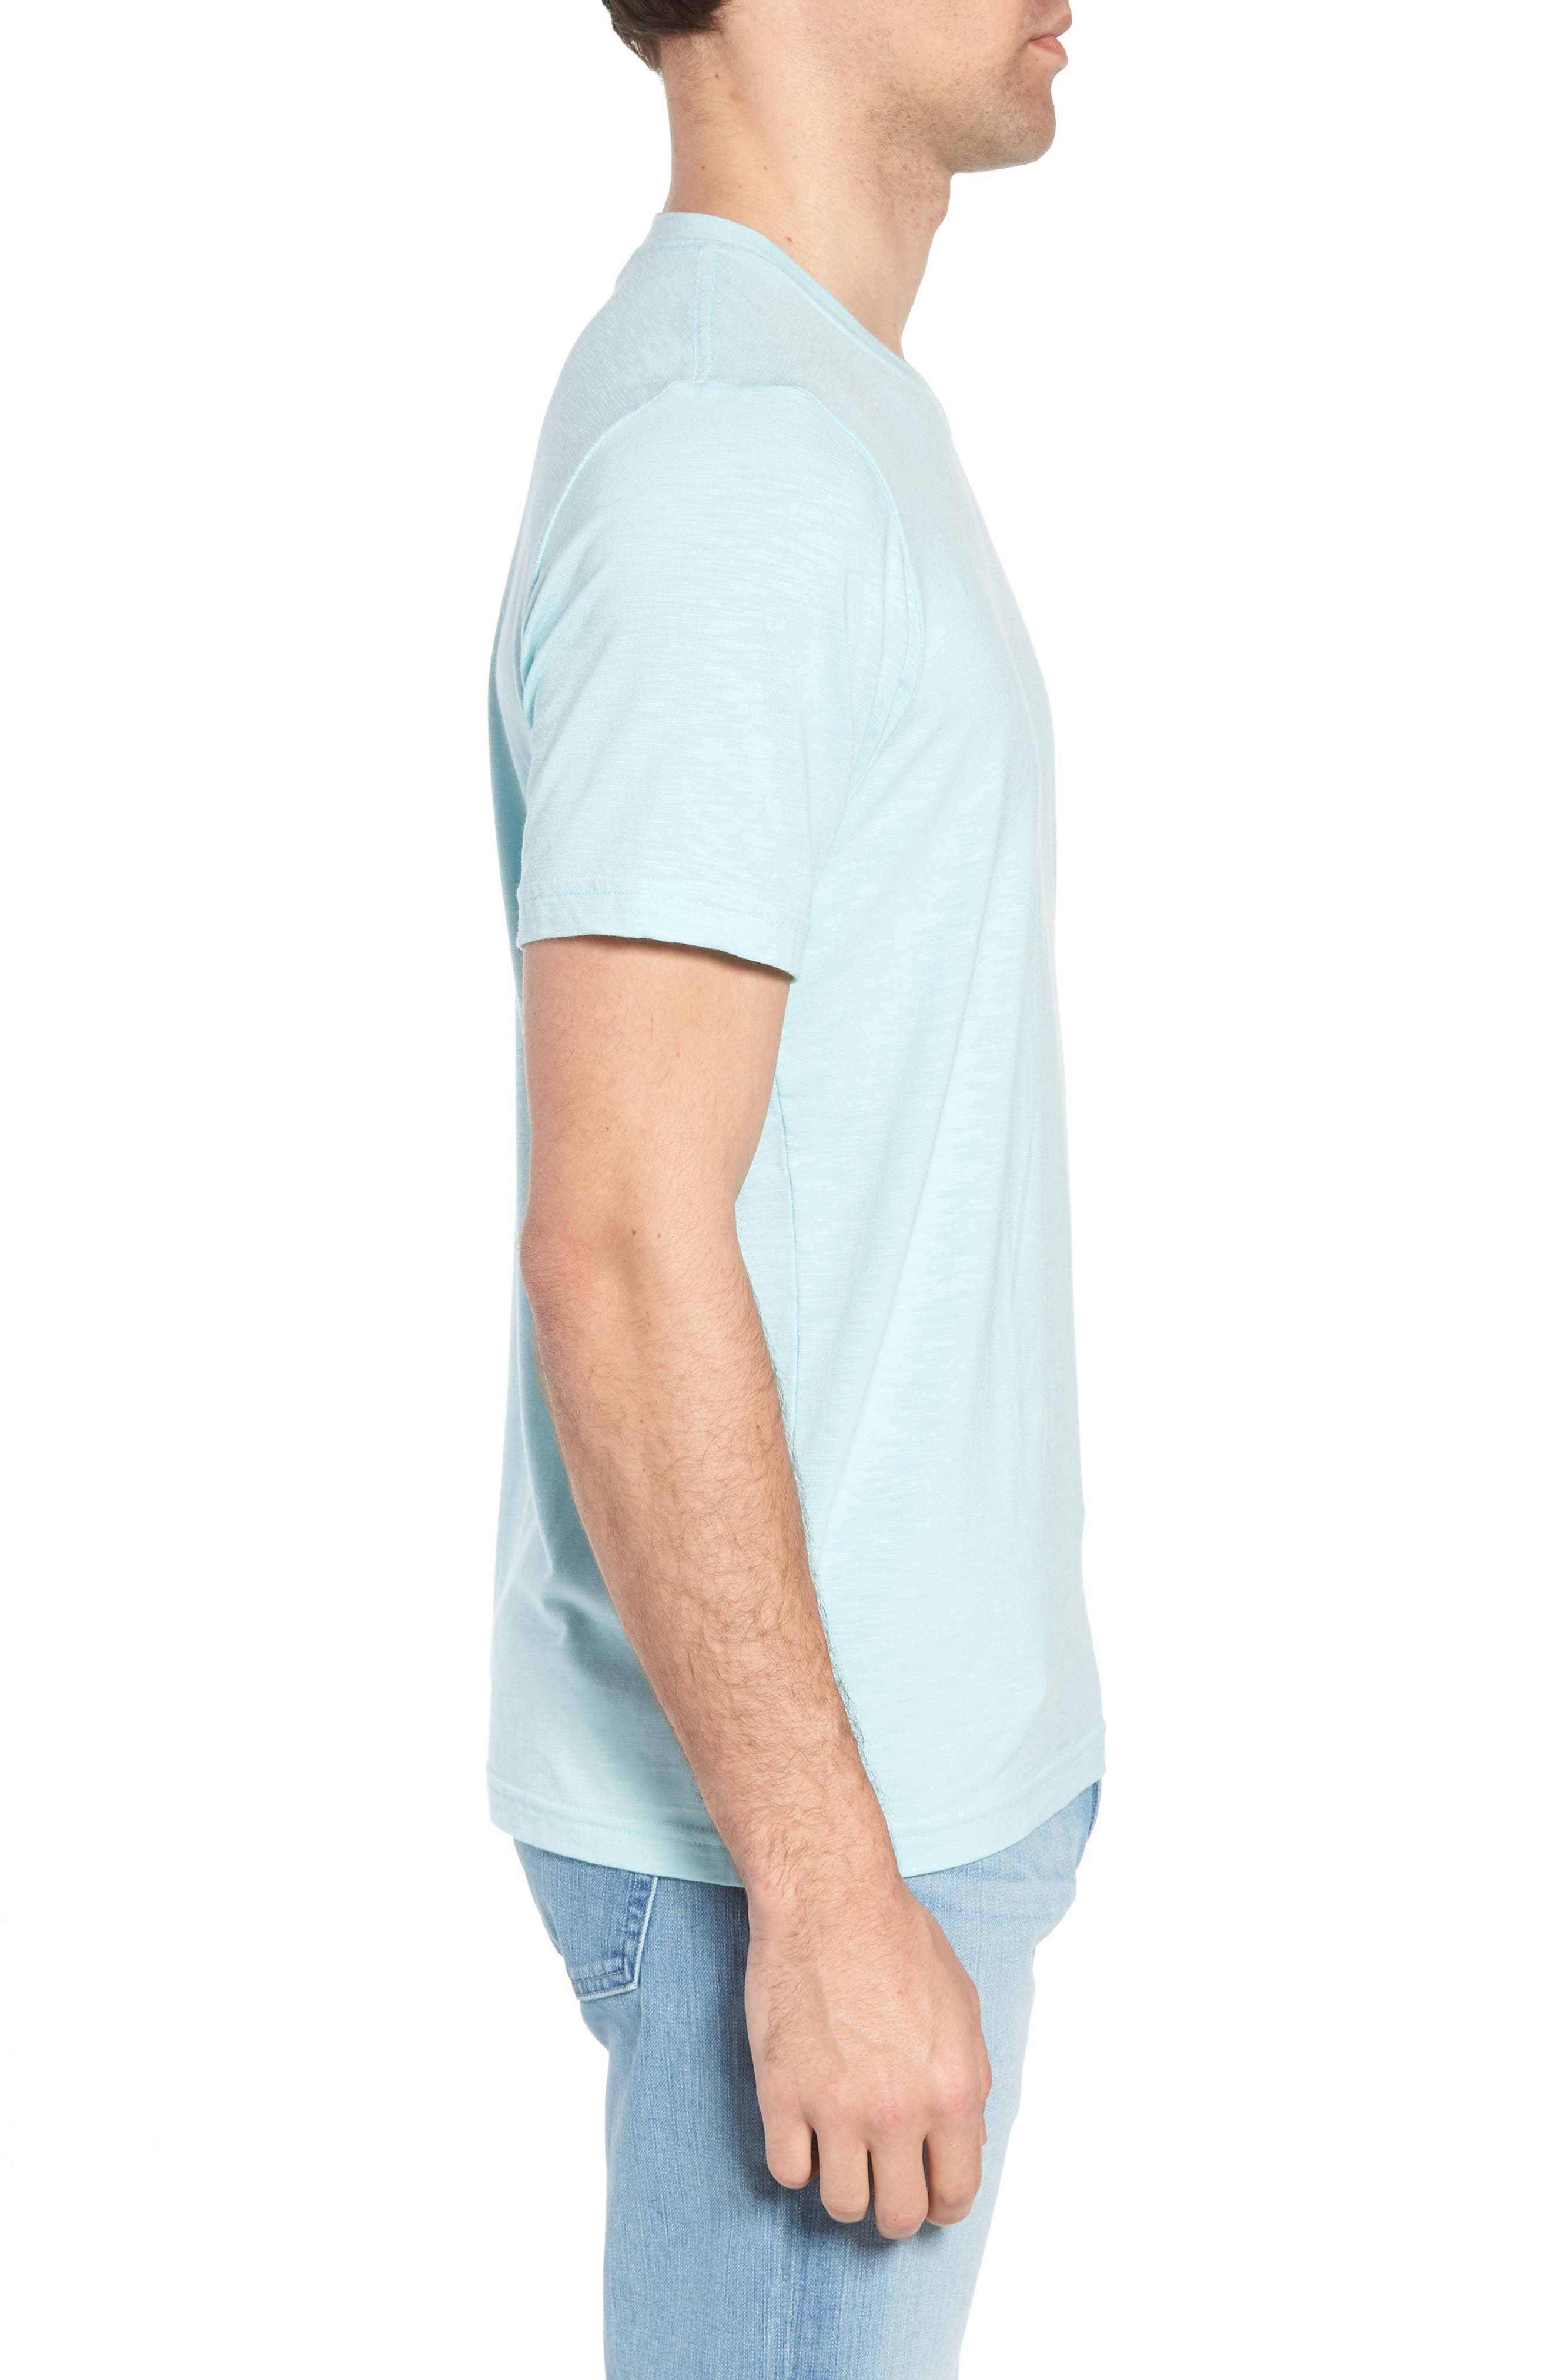 'Trumbull' Trim Fit Slubbed T-Shirt,                             Alternate thumbnail 3, color,                             PORCELAIN BLUE